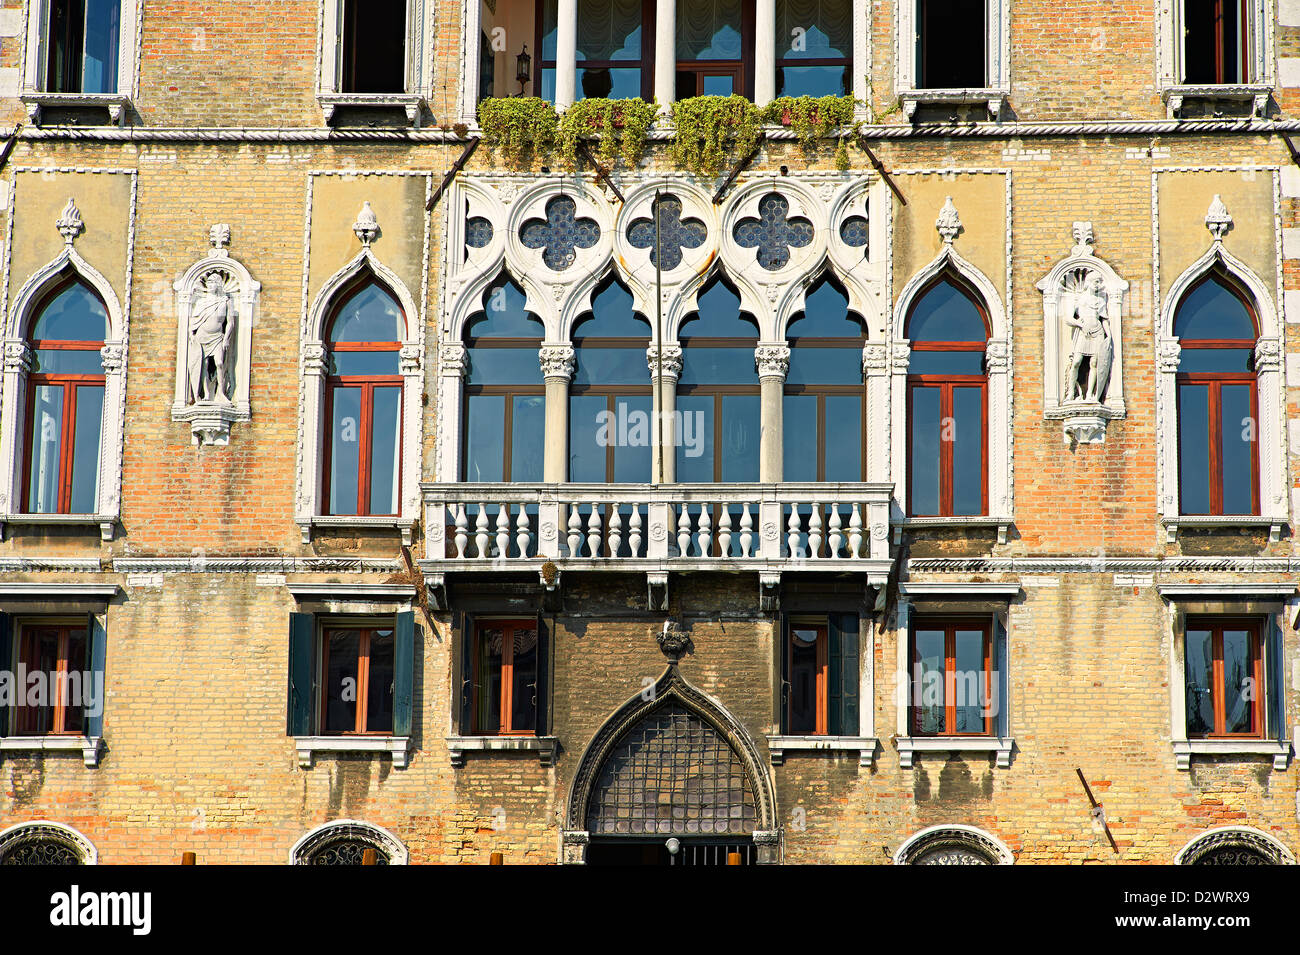 Venetian Gothic Palaces on the Grand Canal Venice - Stock Image